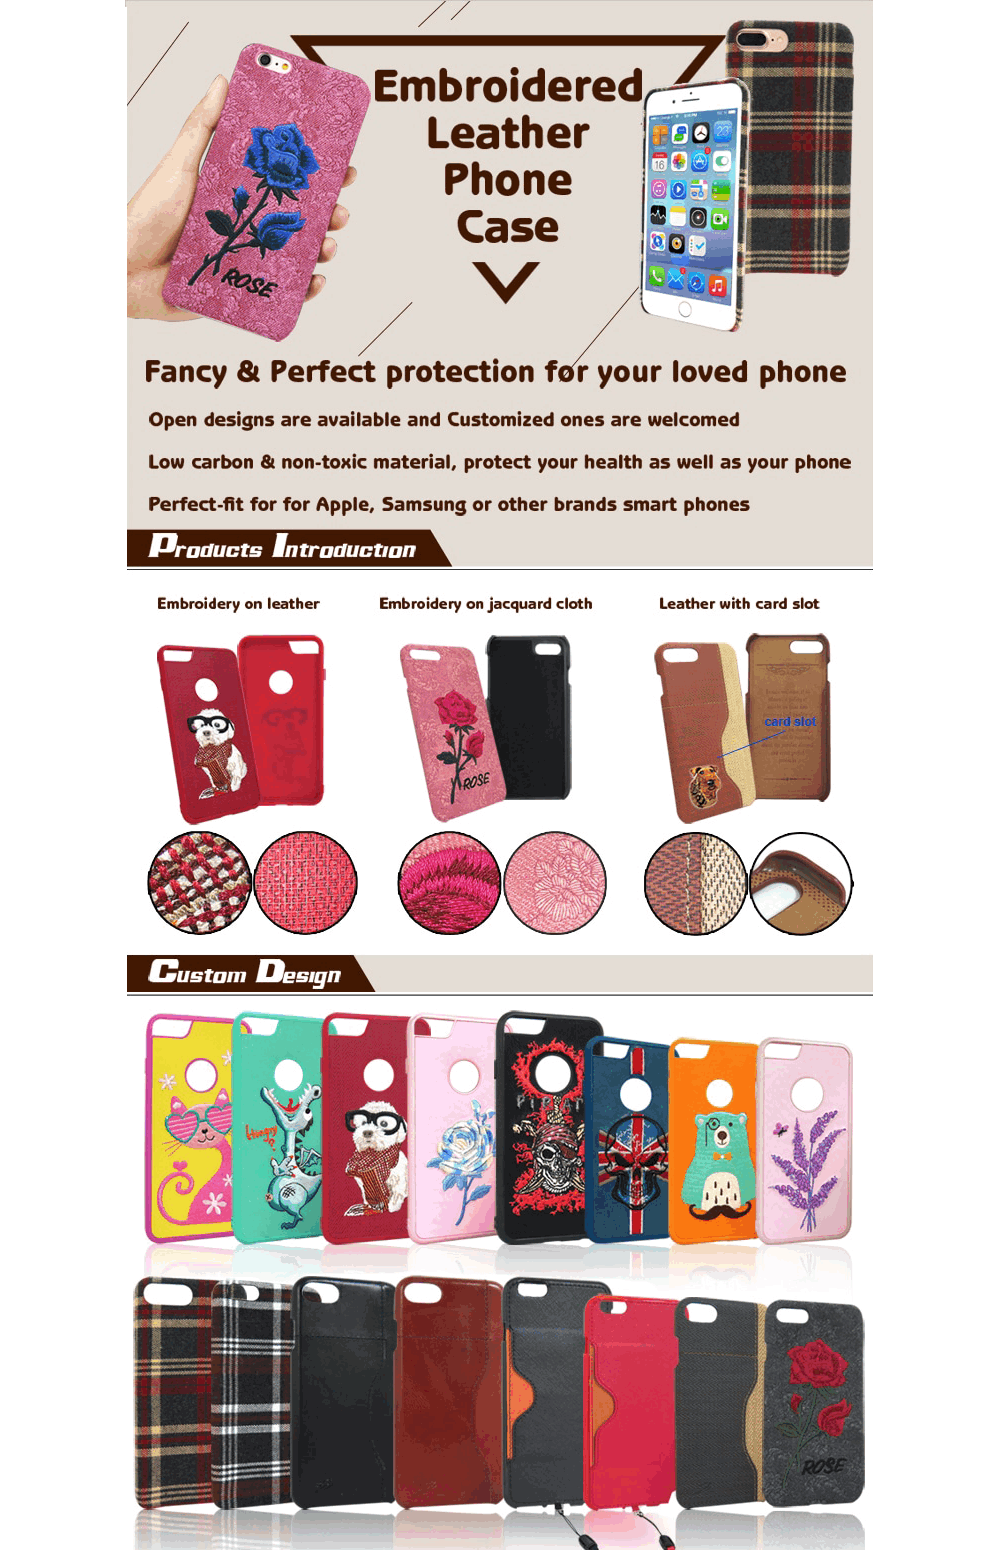 custom embroidered phone cases